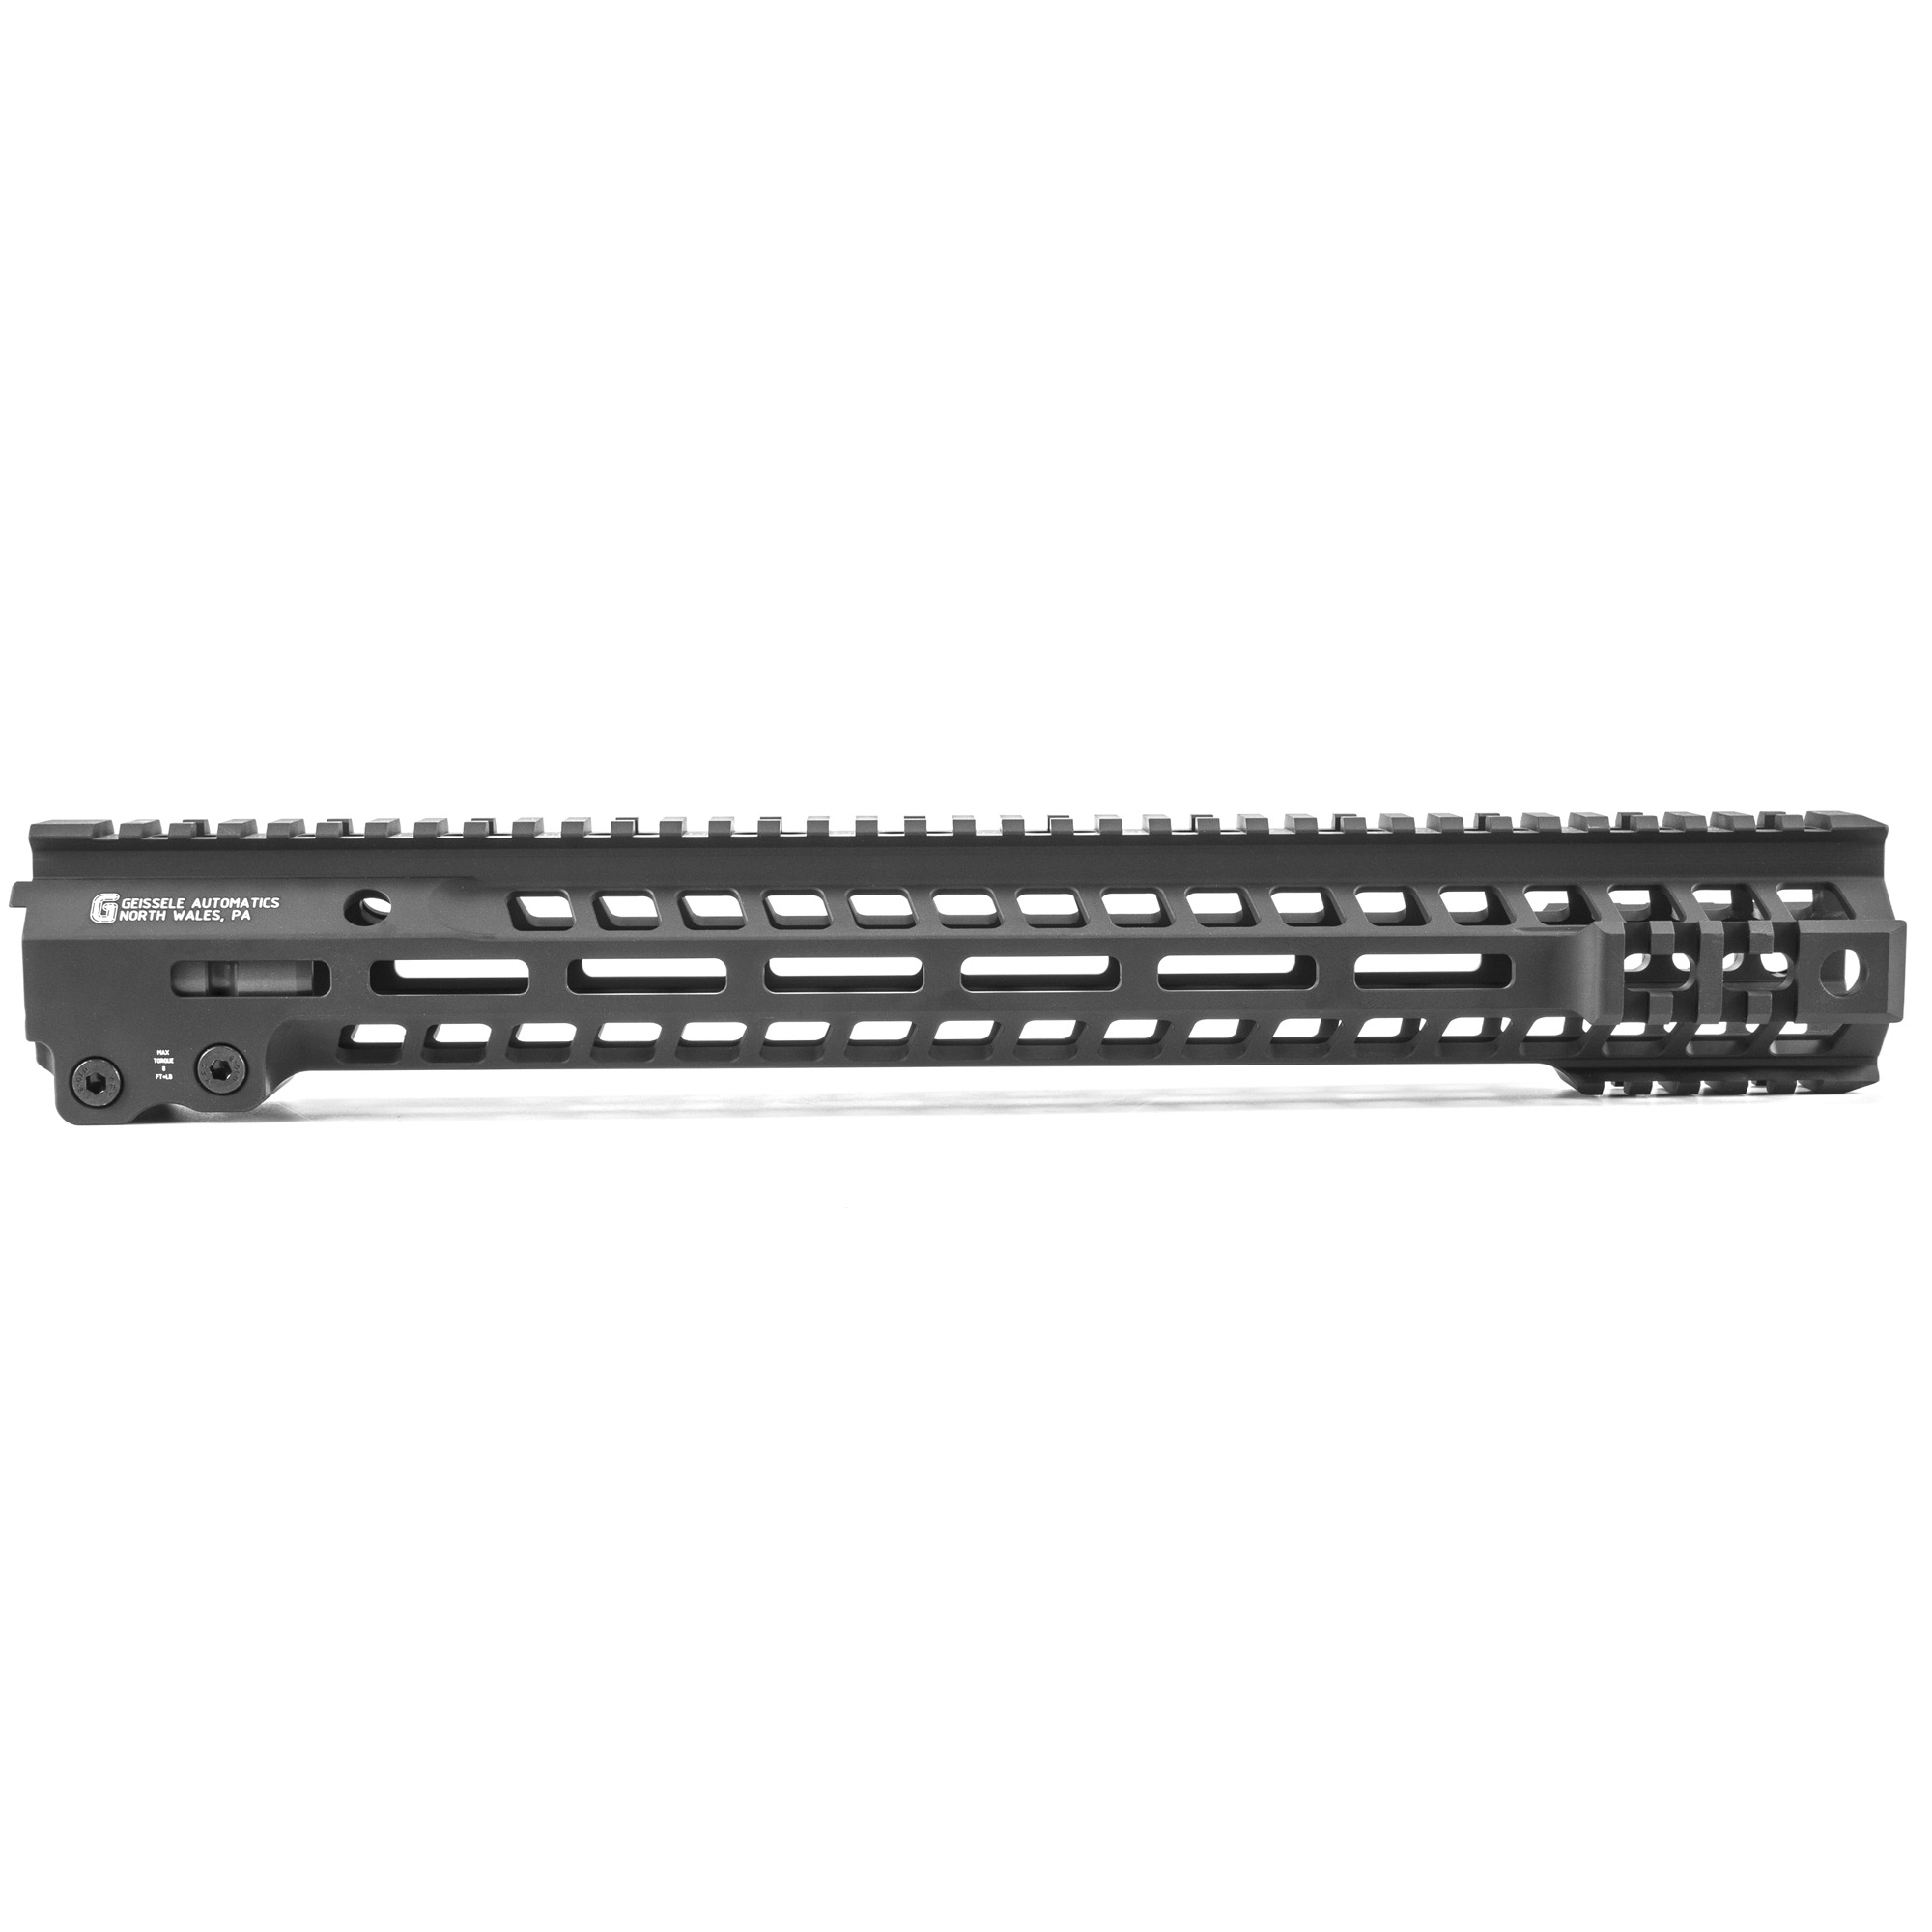 """Geissele's Super Modular 15"""" MK13 M-Lok Rail"""" is the latest entry to the Geissele line up of Super Modular Rails. The new handguard design offers a smaller diameter and overall height to create a slimmer package. Included with the MK13 Super Modular Rail is an updated version of the proven Geissele Barrel Nut design"""" not only providing ease of installation but superior rigidity. The long surface contact of the 2.25"""" barrel nut interfaces with the receiver creating a platform that can be trusted to be straight and true the entire length of the free float rail. The MK13 is precision machined using 6061-T6 aluminum due to its strength"""" rigidity and lightweight properties. Utilizing Magpul's M-LOK technology in the 3"""" 6"""" and 9 o'clock positions and machined-in Picatinny rails at the end allow the end user to customize their rifle and securely mount lights"""" bipods and other firearm accessories. The Geissele MK13 Super Modular rail is Type 3 Hardcoat Anodized. This product is bundled with a low-profile Geissele Super Gas Block."""